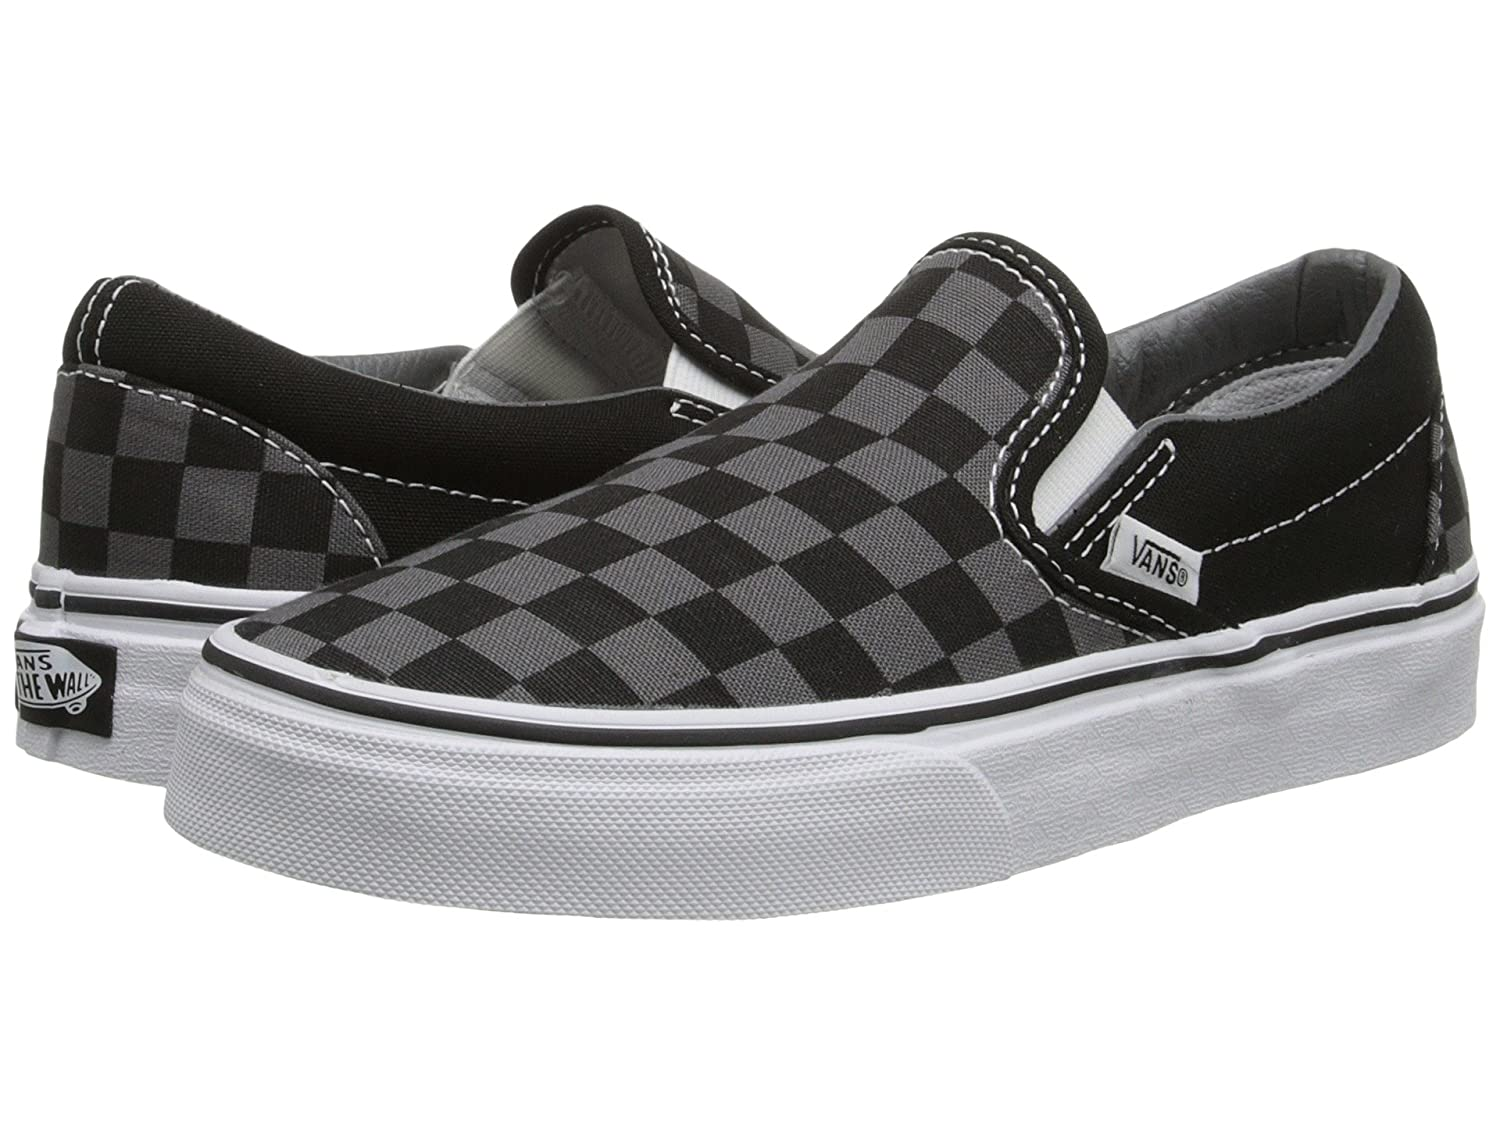 Vans Men's Classic Slip On (Suede & Suiting) Skateboarding Shoes B01M6TMJ8G 7 B(M) US Women / 5.5 D(M) US Men|Black/Pewter Checkerboard